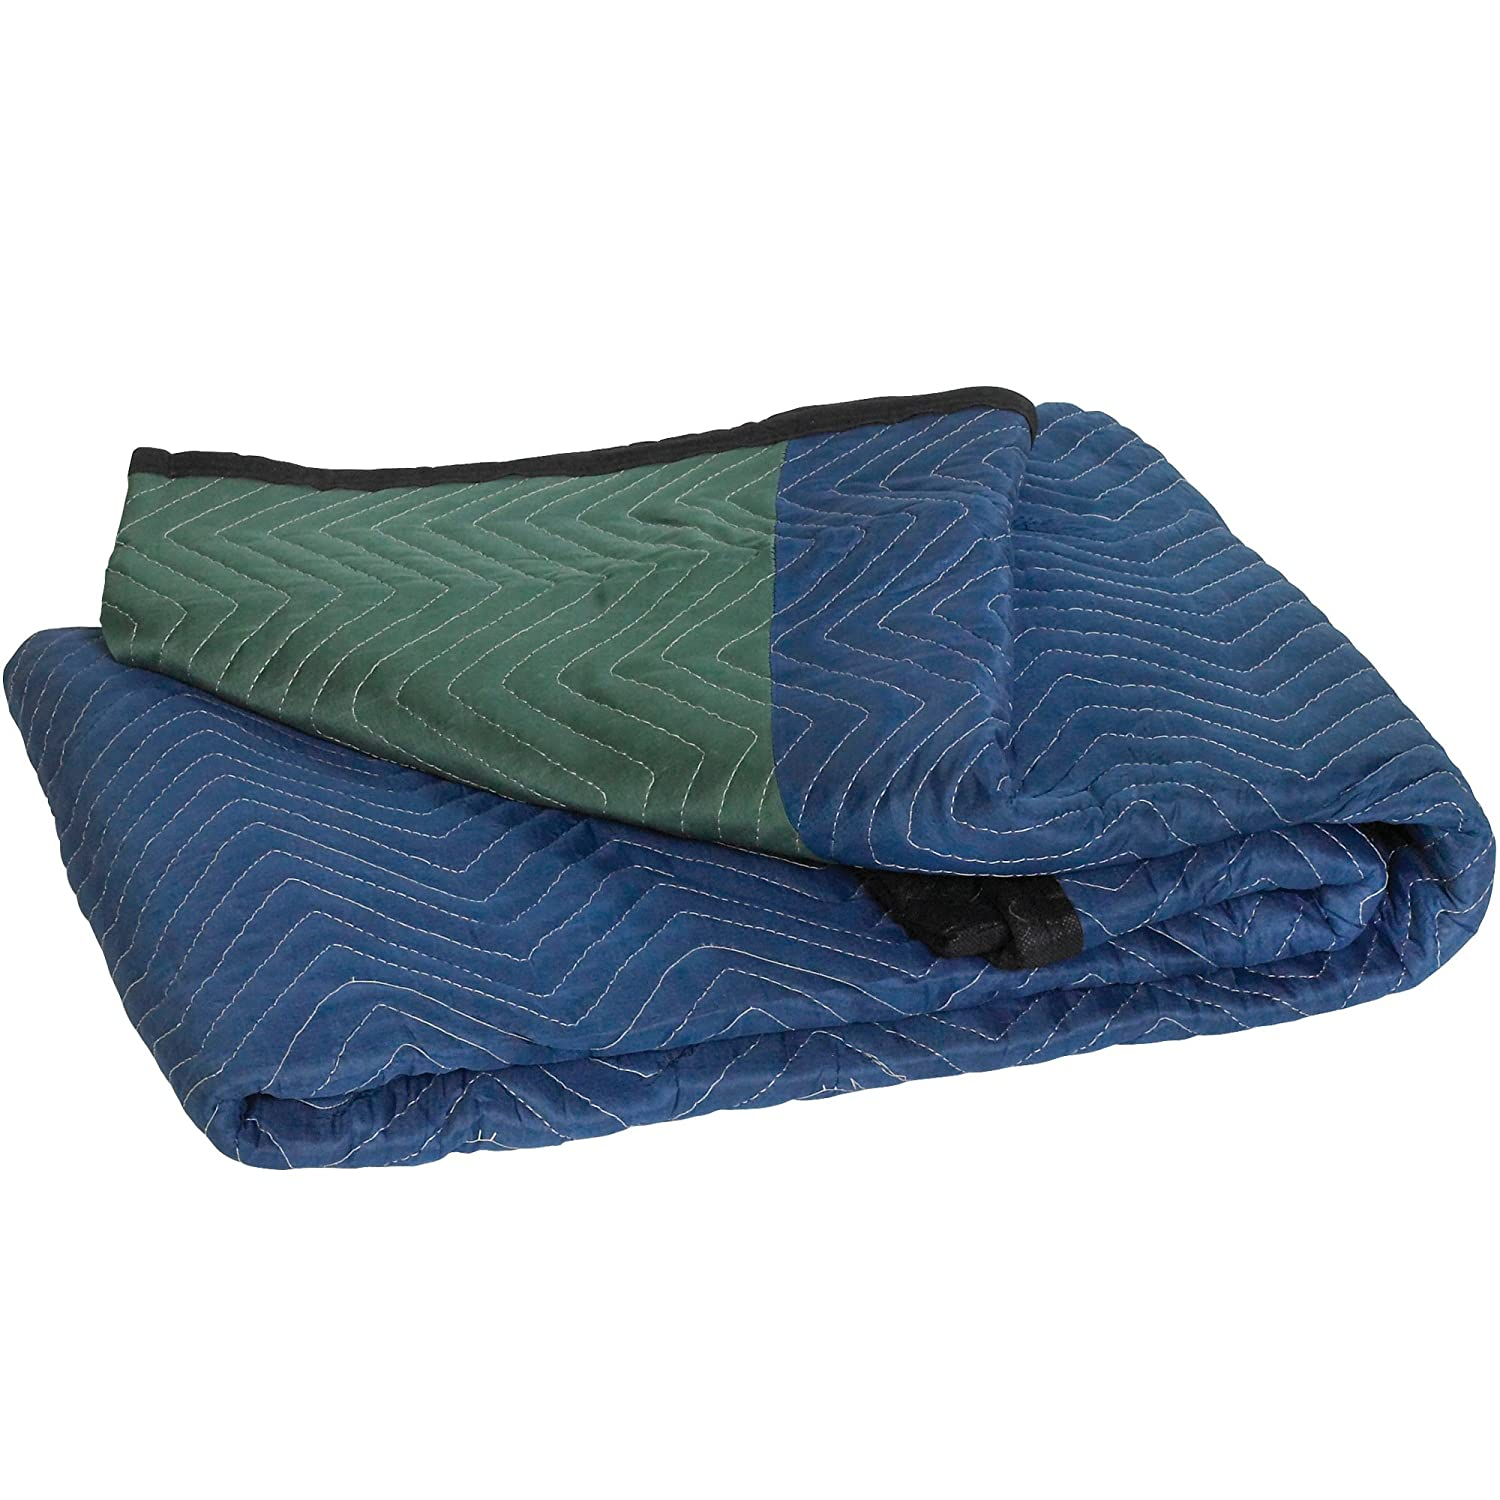 Easy-to-use Boxes Fast Deluxe NEW Moving Blankets 72